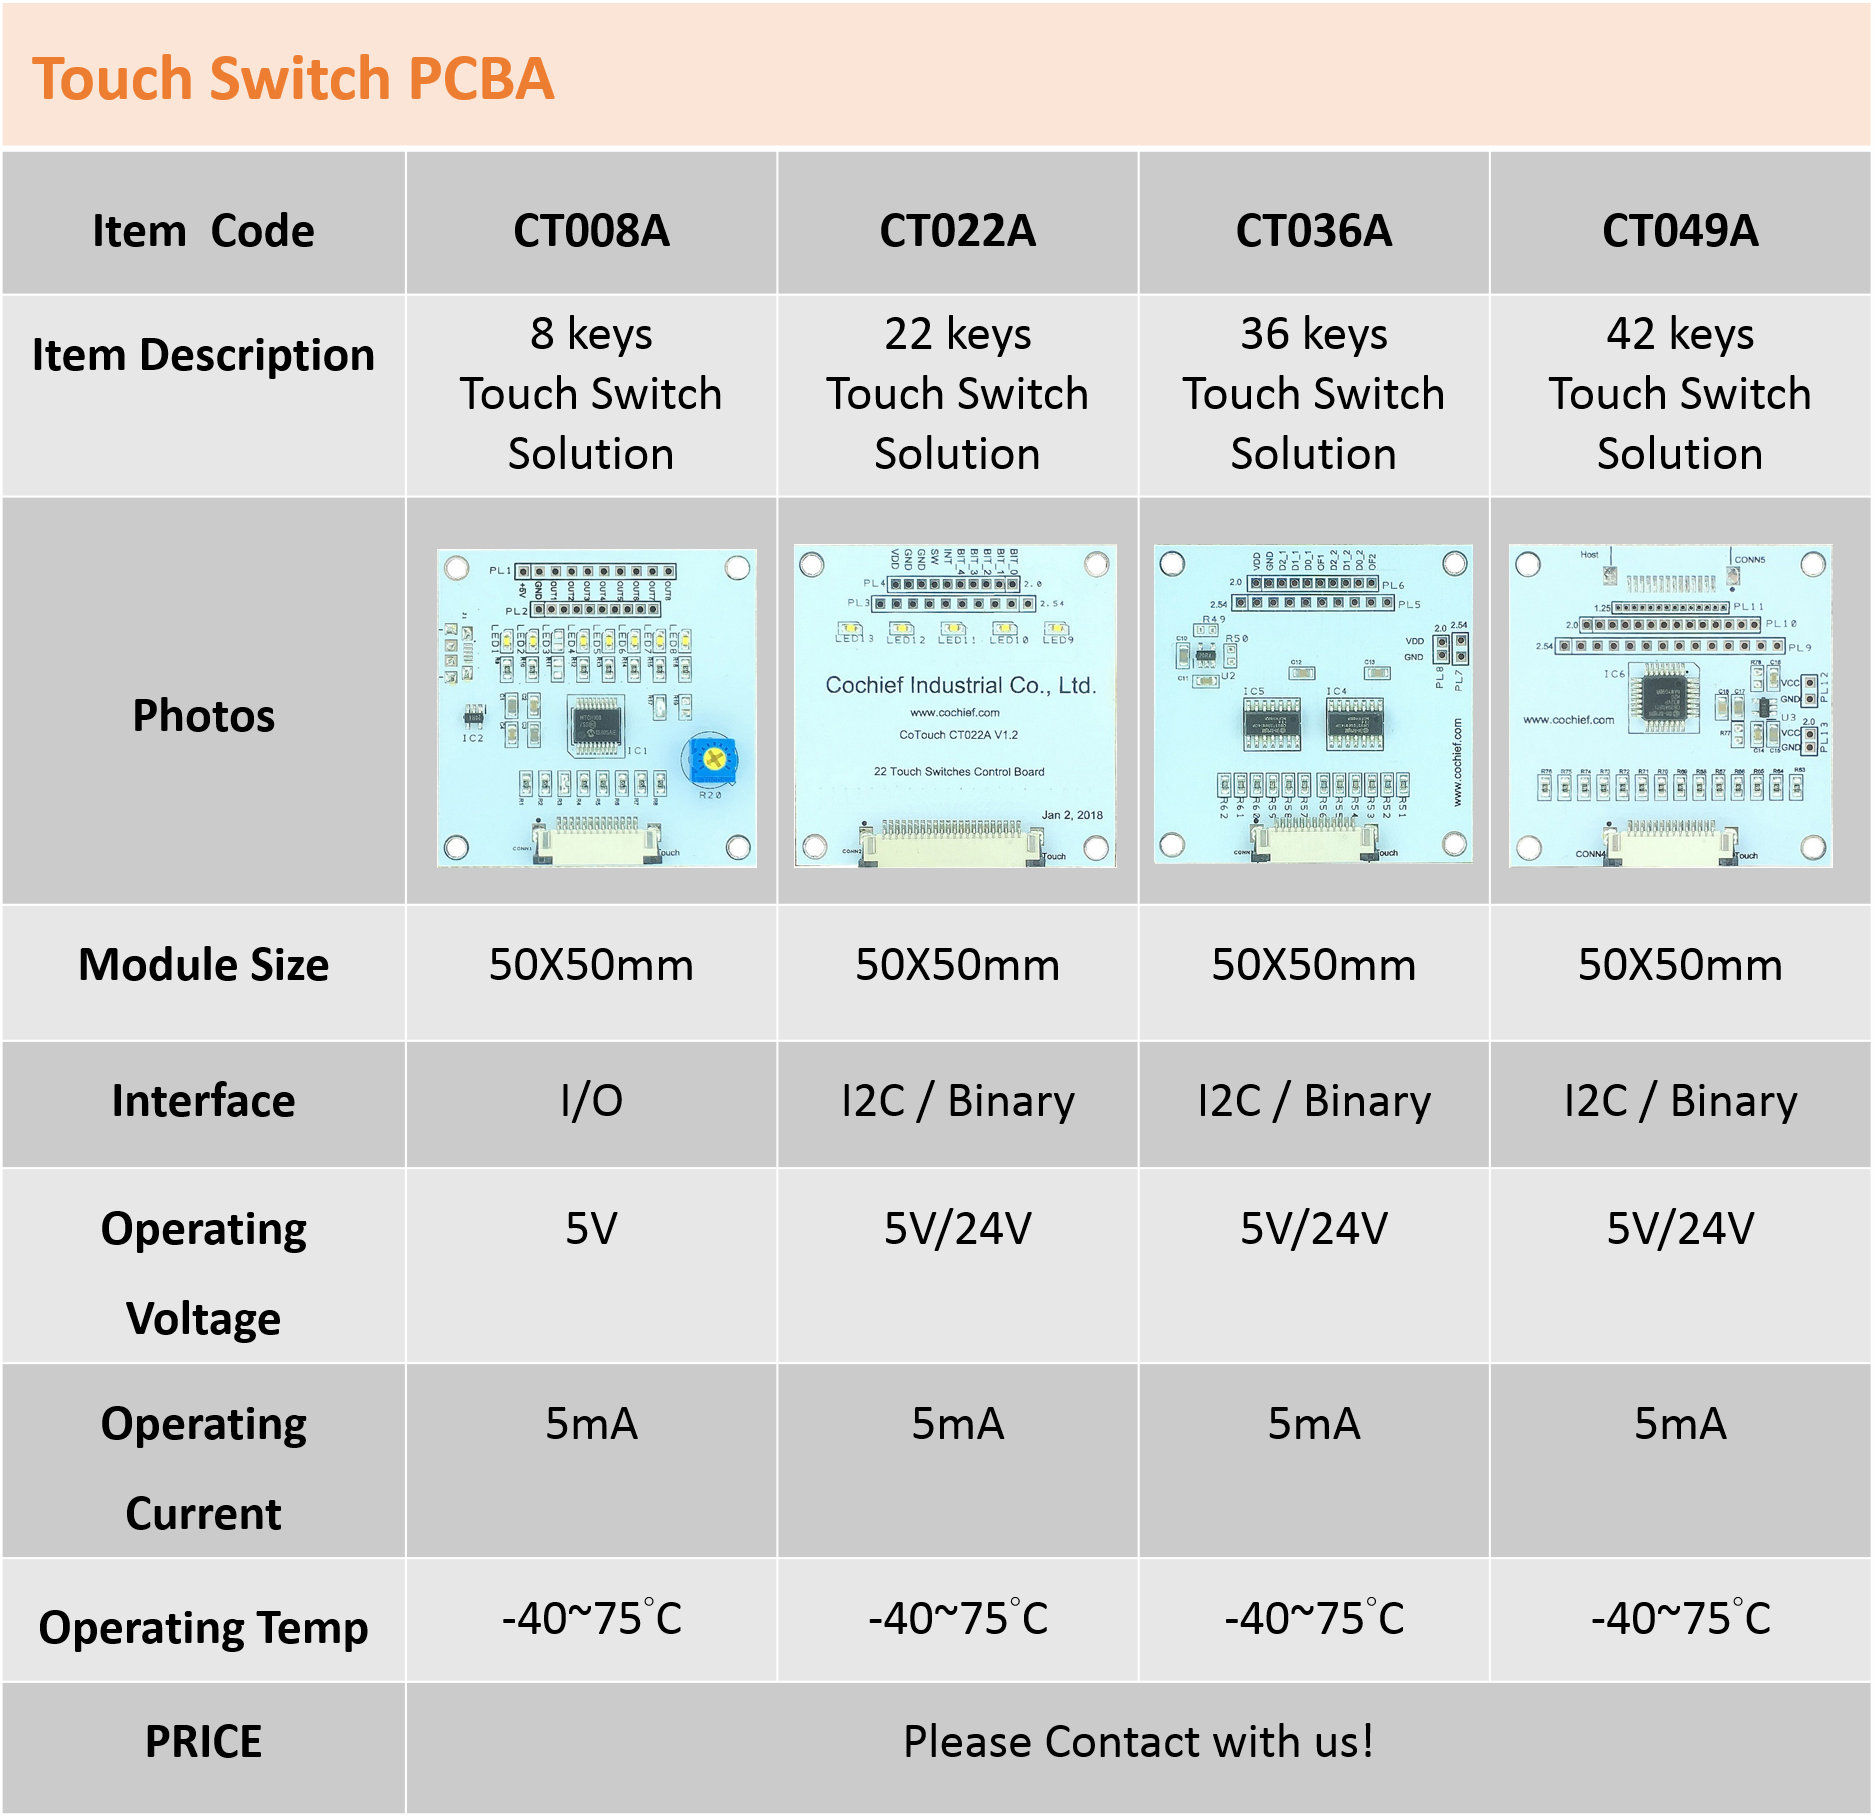 Touch Switch PCBA